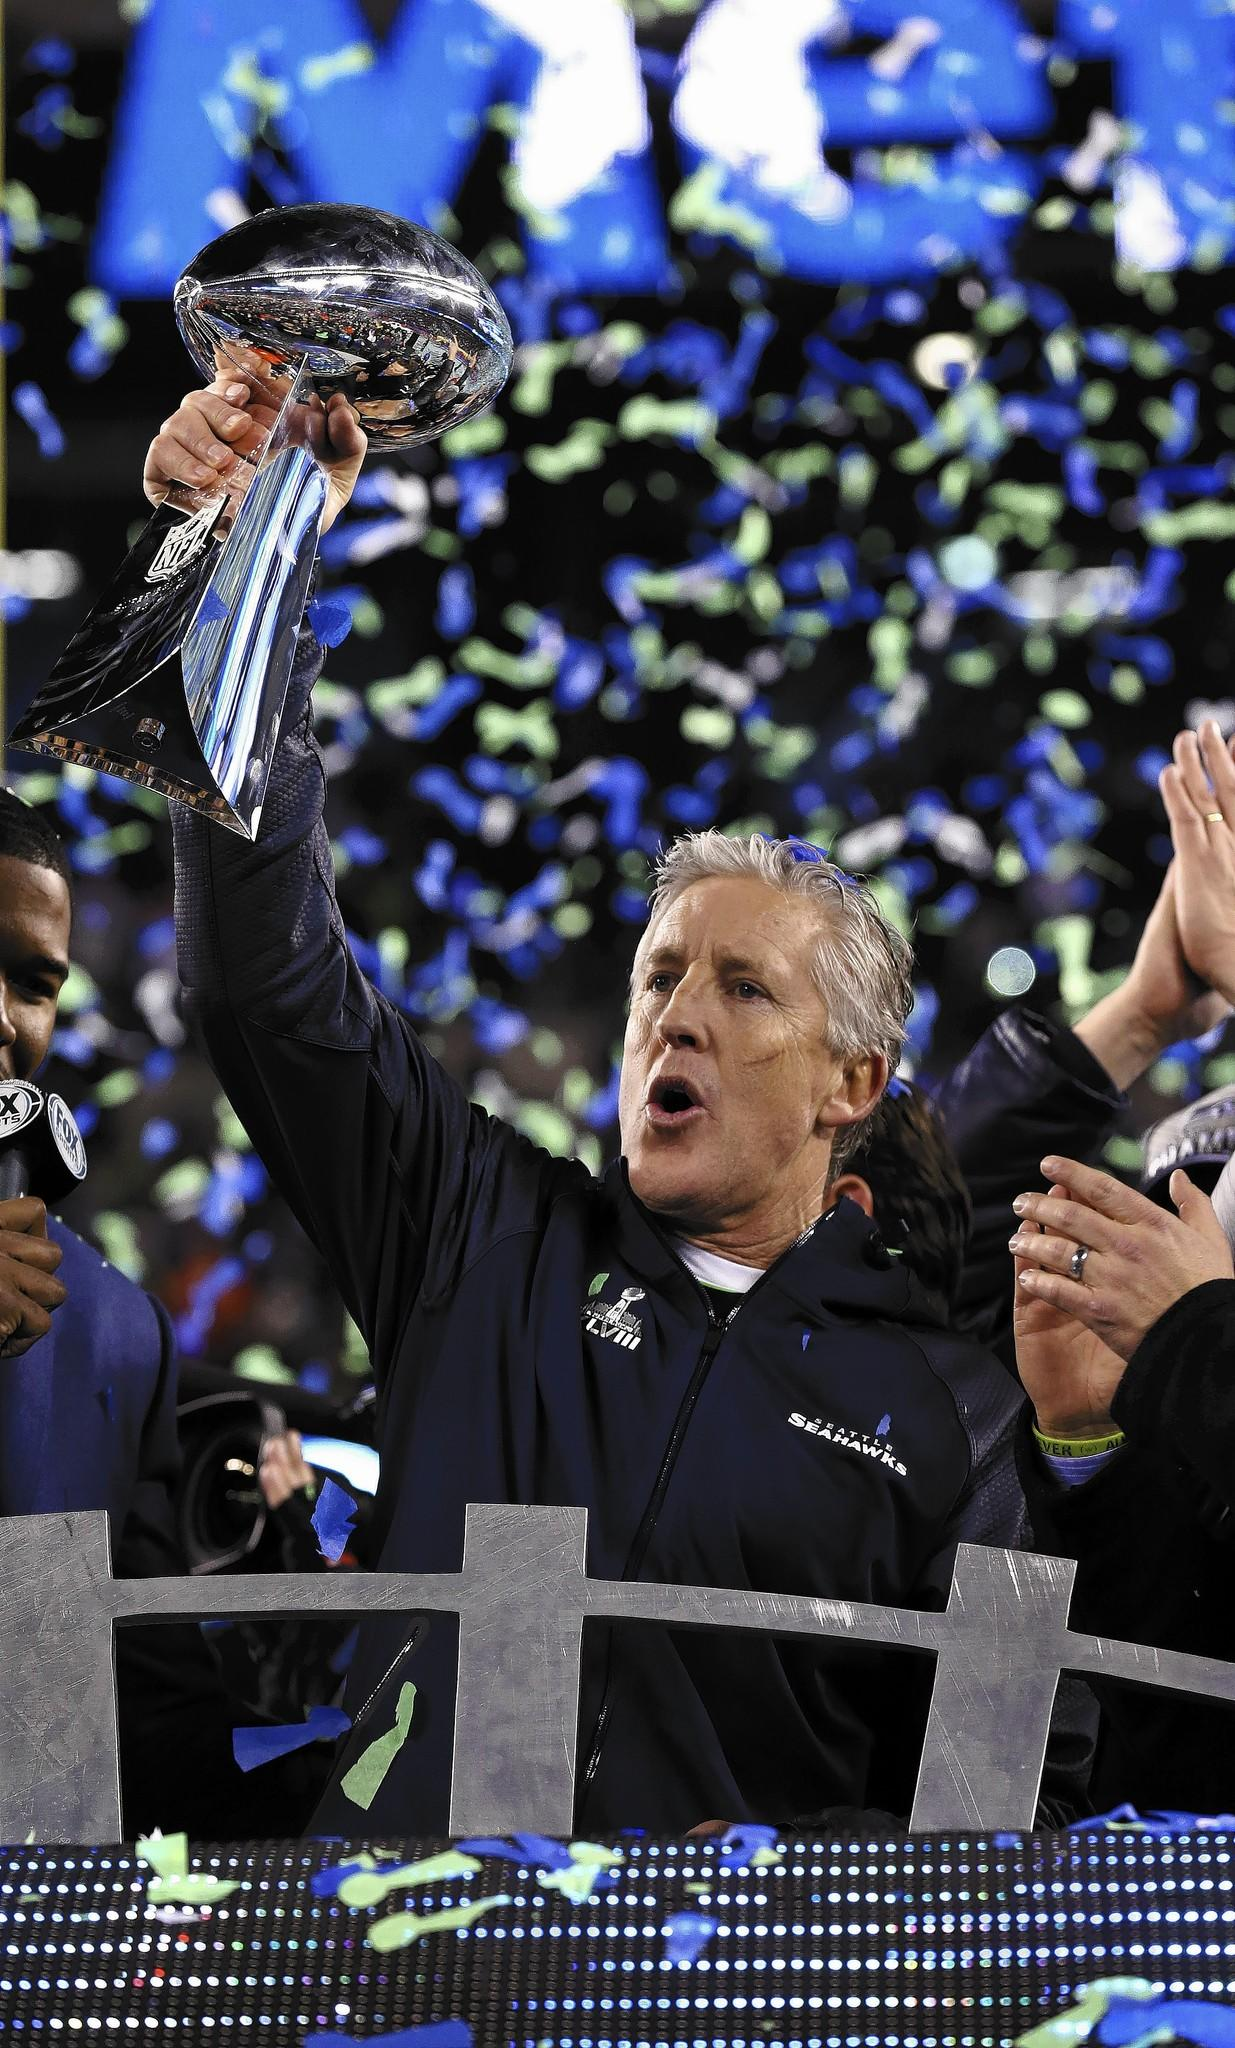 Seahawks coach Pete Carroll hoists tthe Vince Lombardi Trophy on Sunday night.